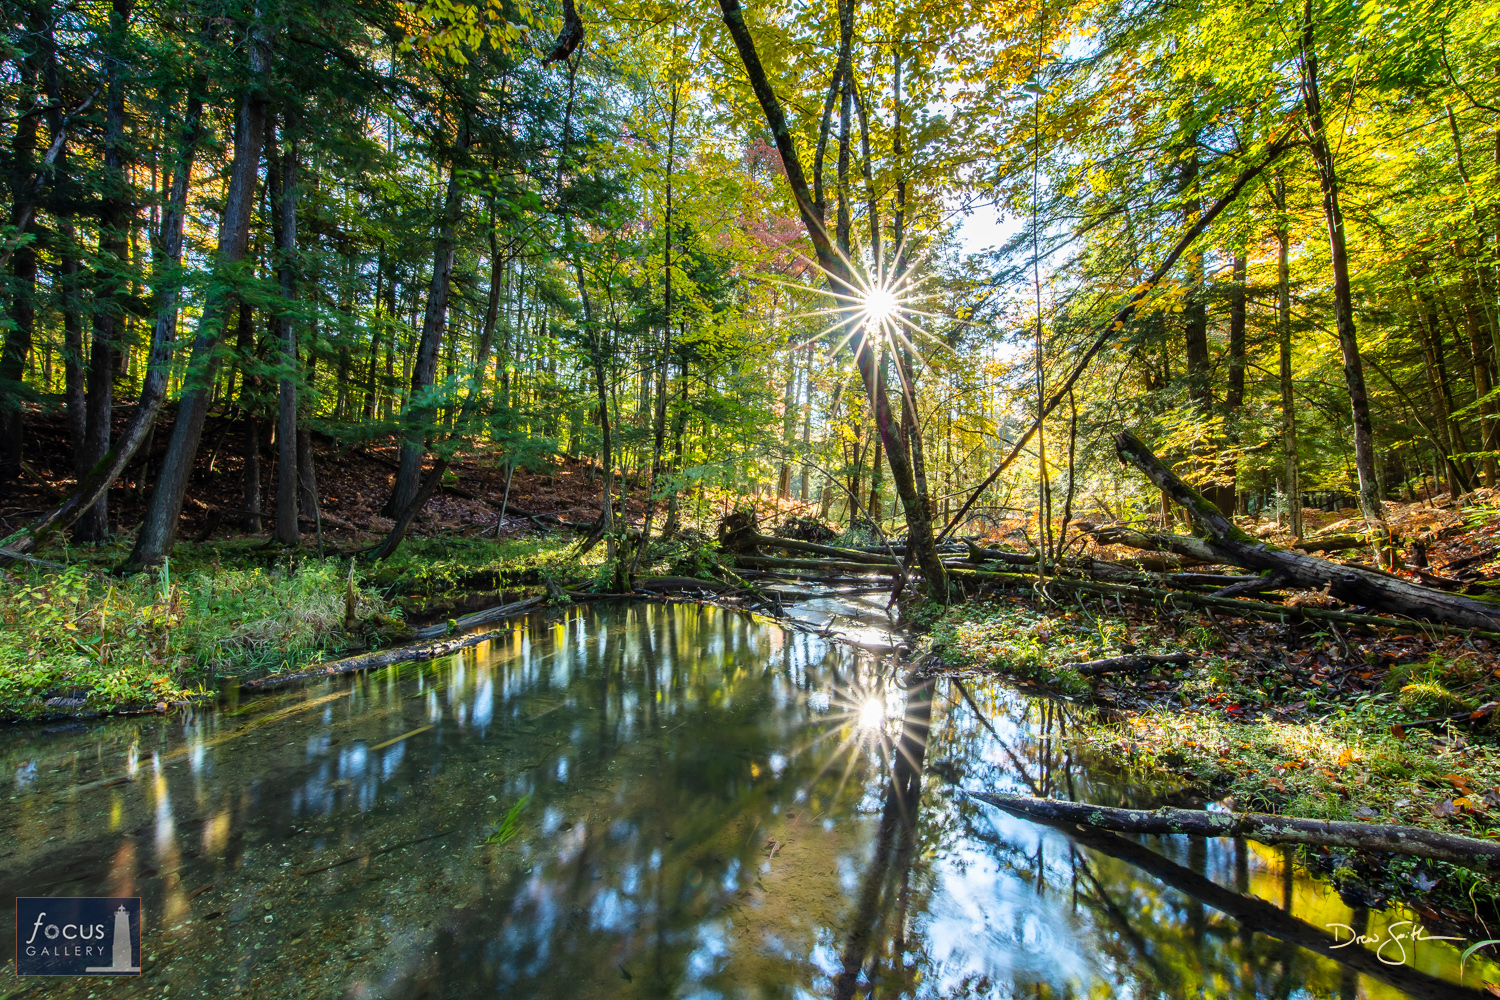 Photo © Drew Smith The afternoon sun shines through the forest along the creek connecting the Platte River to Lower Woodcock...